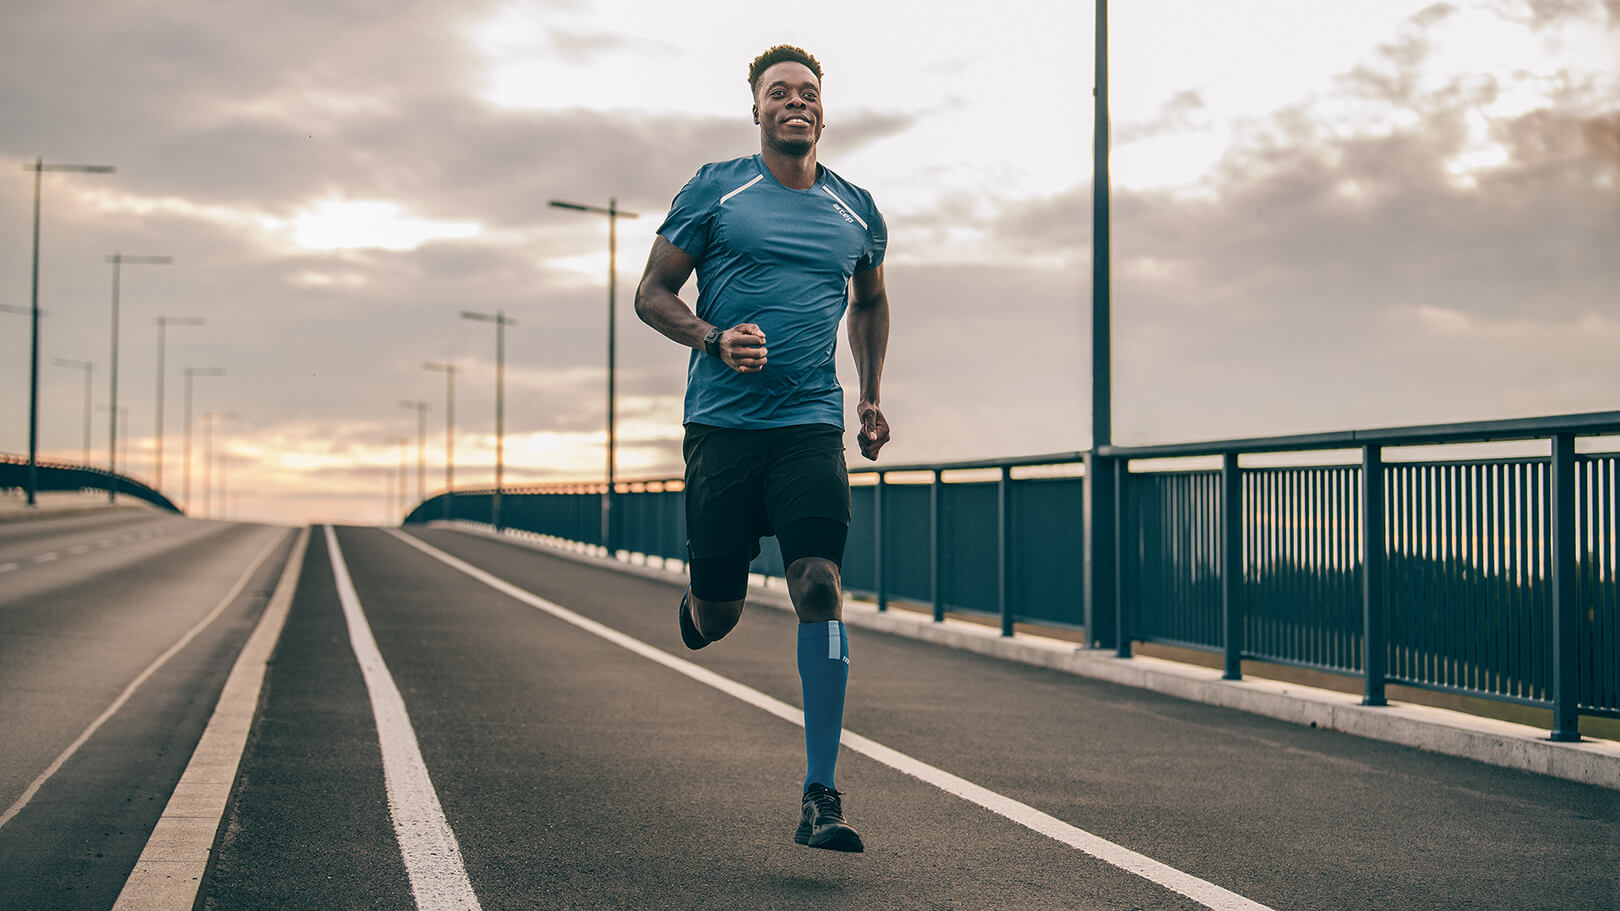 COMPRESSION FOR LIGHTER LEGS | Run Socks 3.0